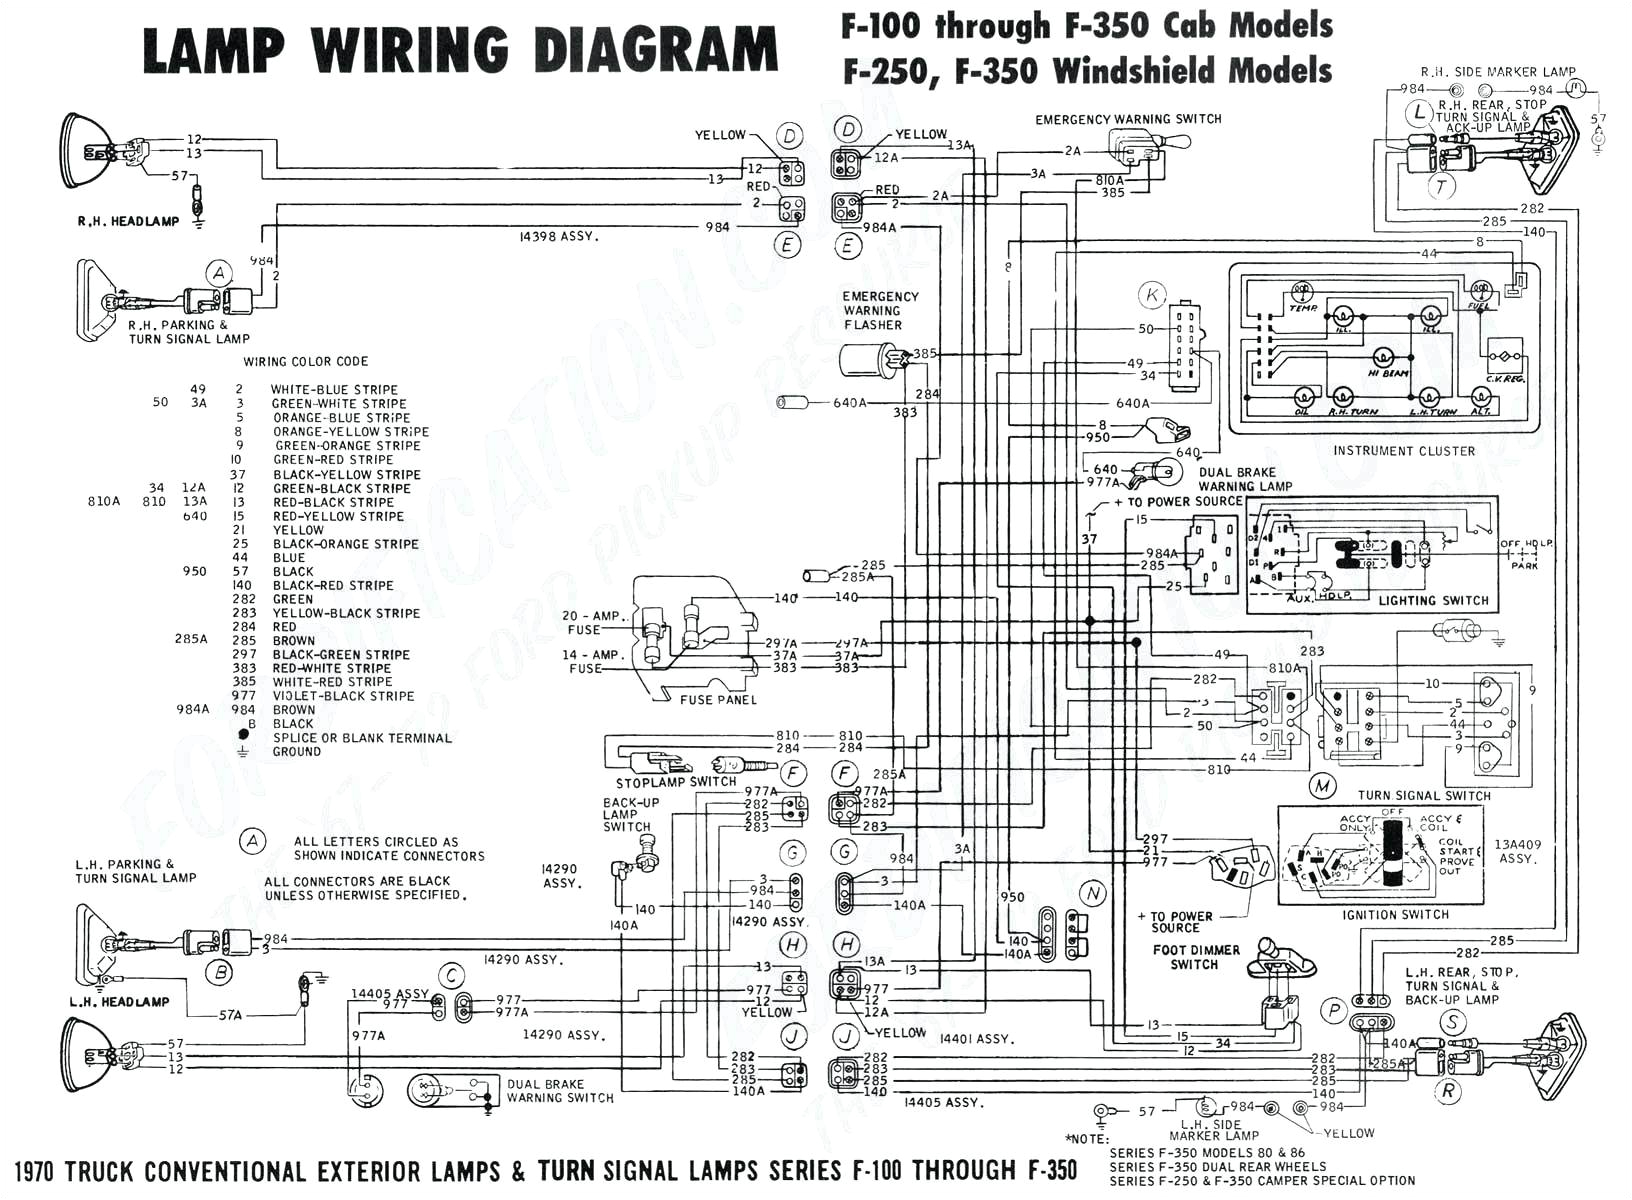 jazzmaster wiring diagram inspirational wining diagram for lipo39s wining diagram for lipo39s in series parallel model flying